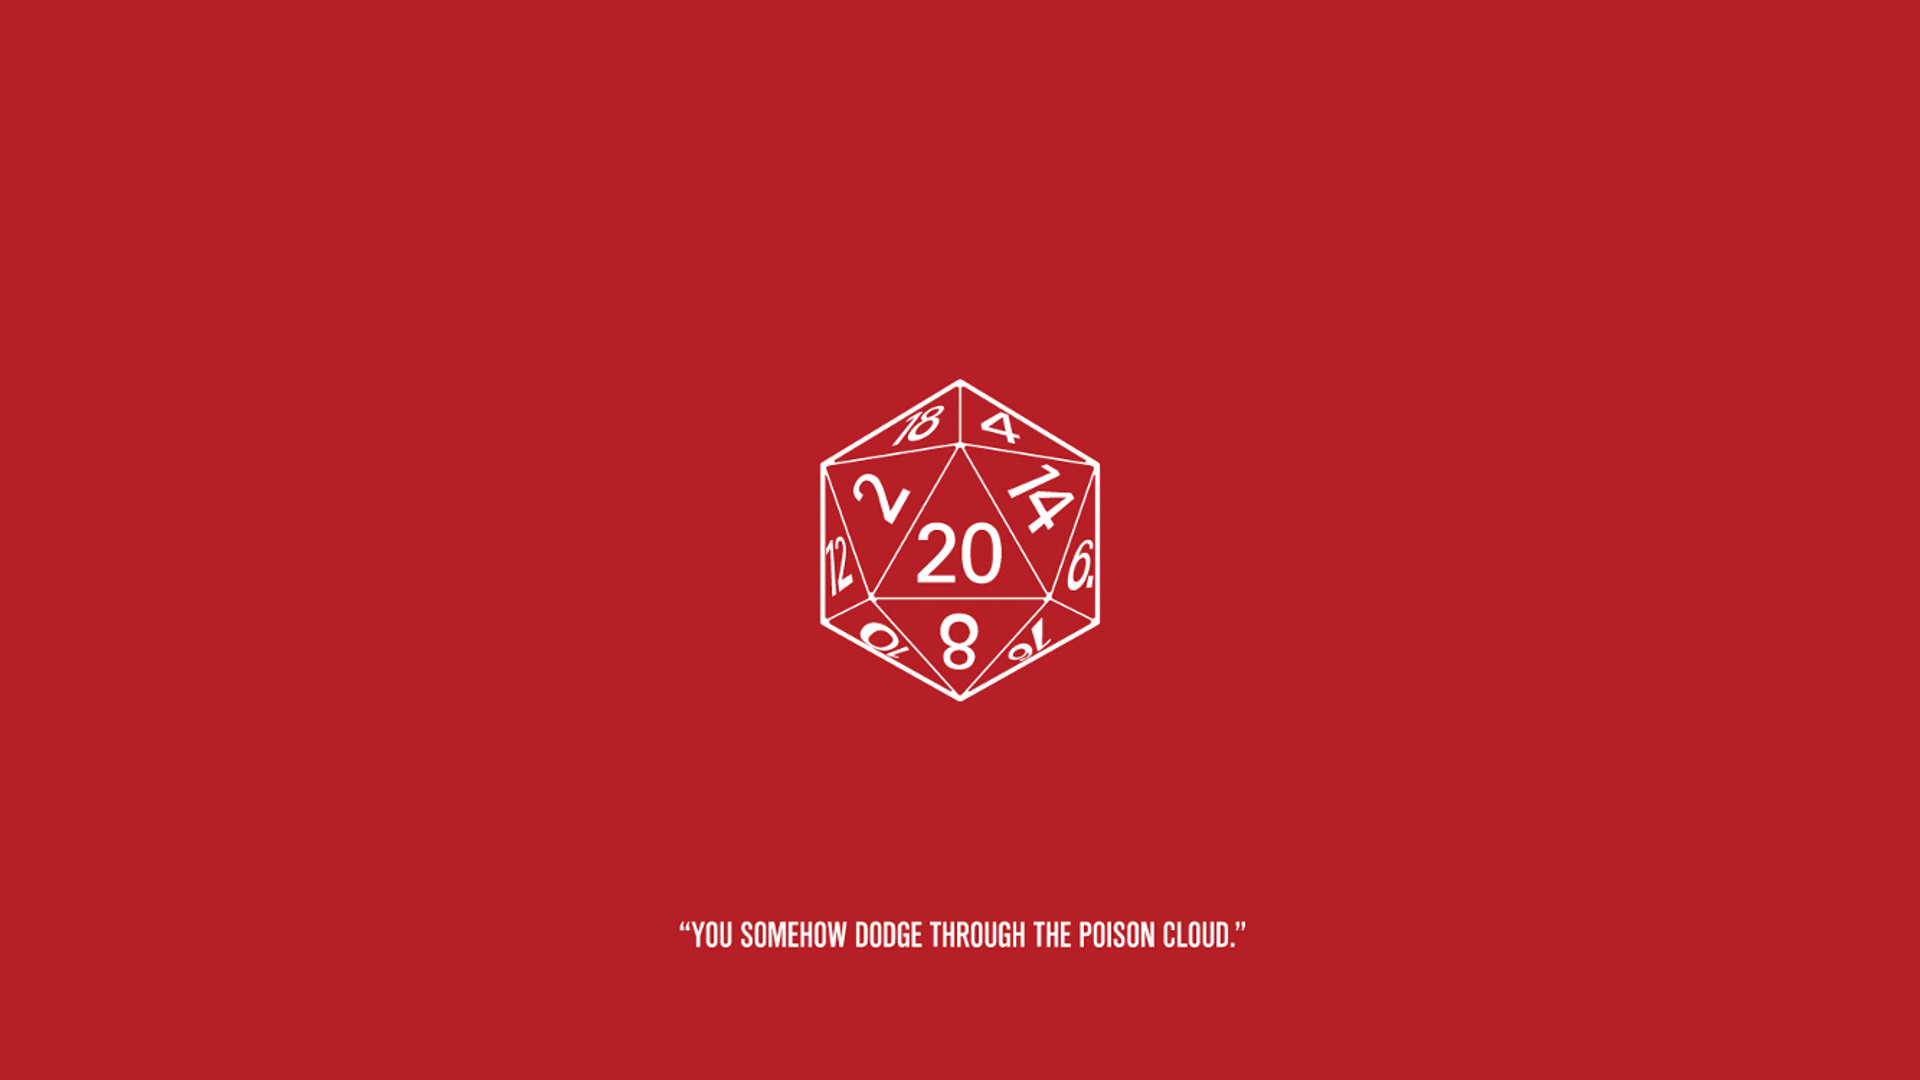 General Dungeons and Dragons humor d20 red background simple  background